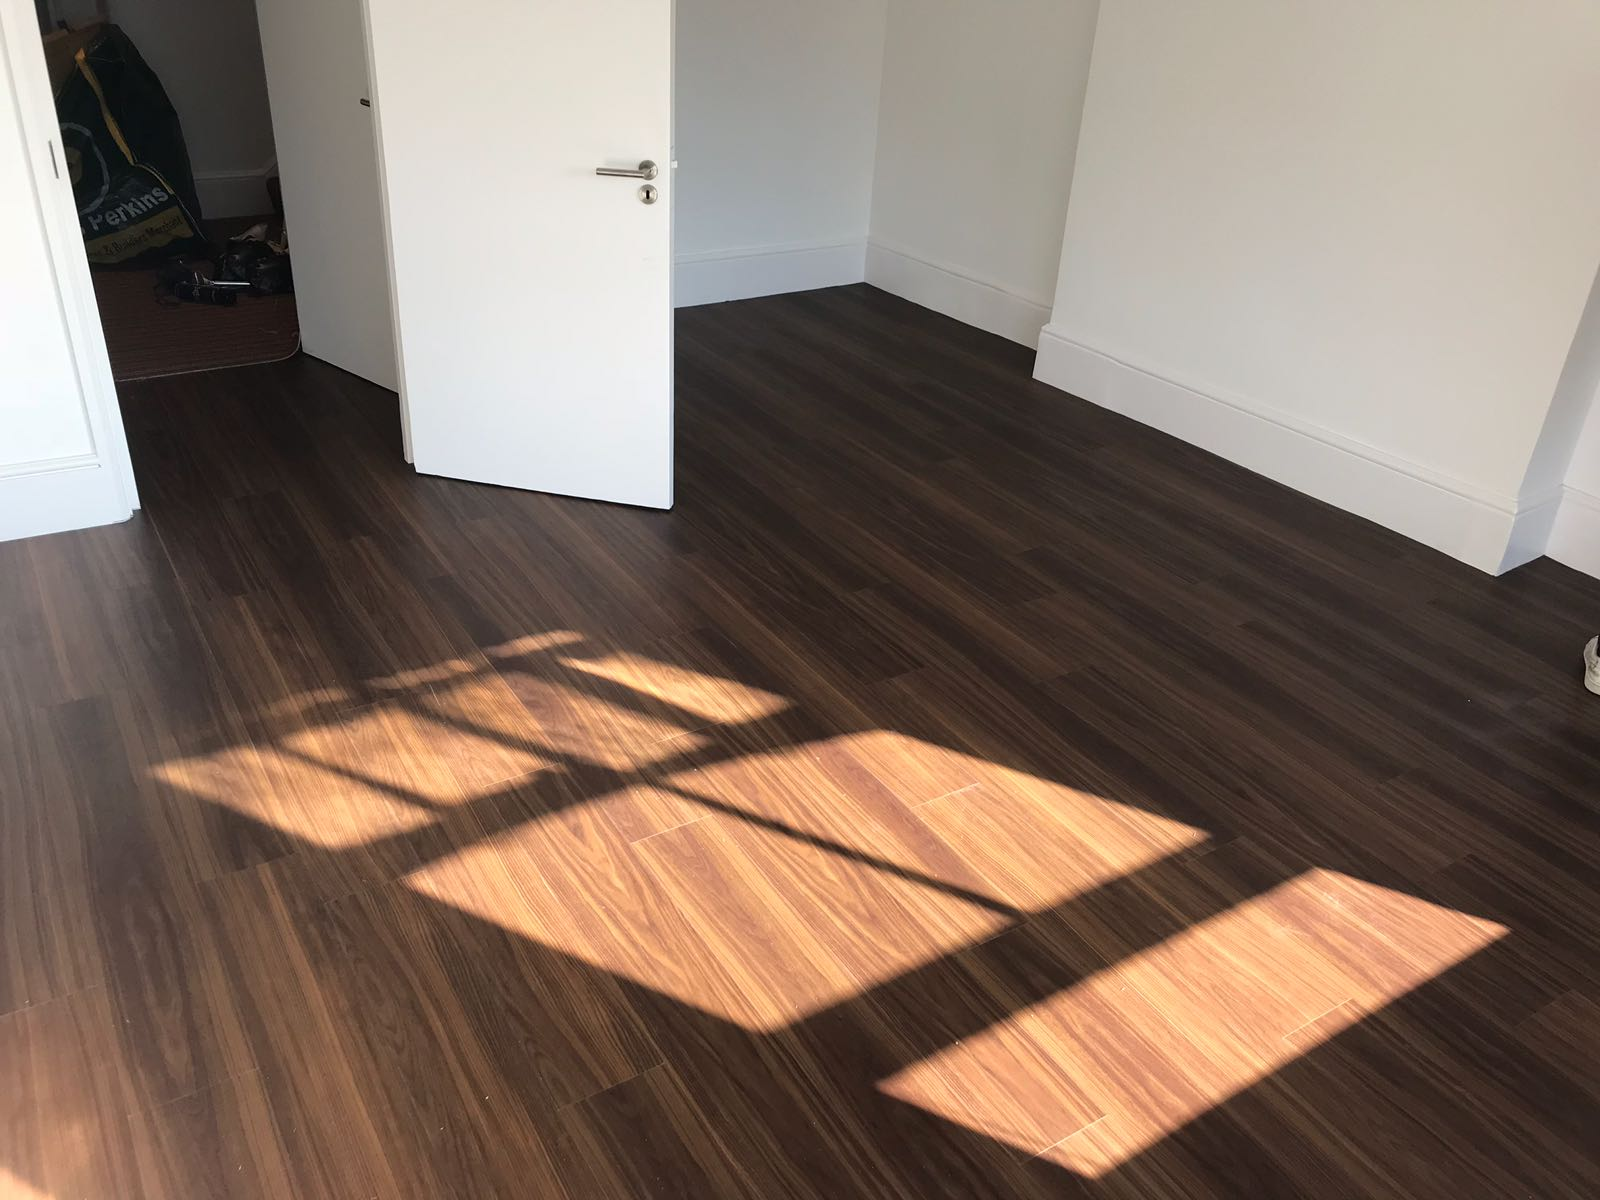 2018-04-24_Amtico Flooring Installed In Chelsea Residence (12)